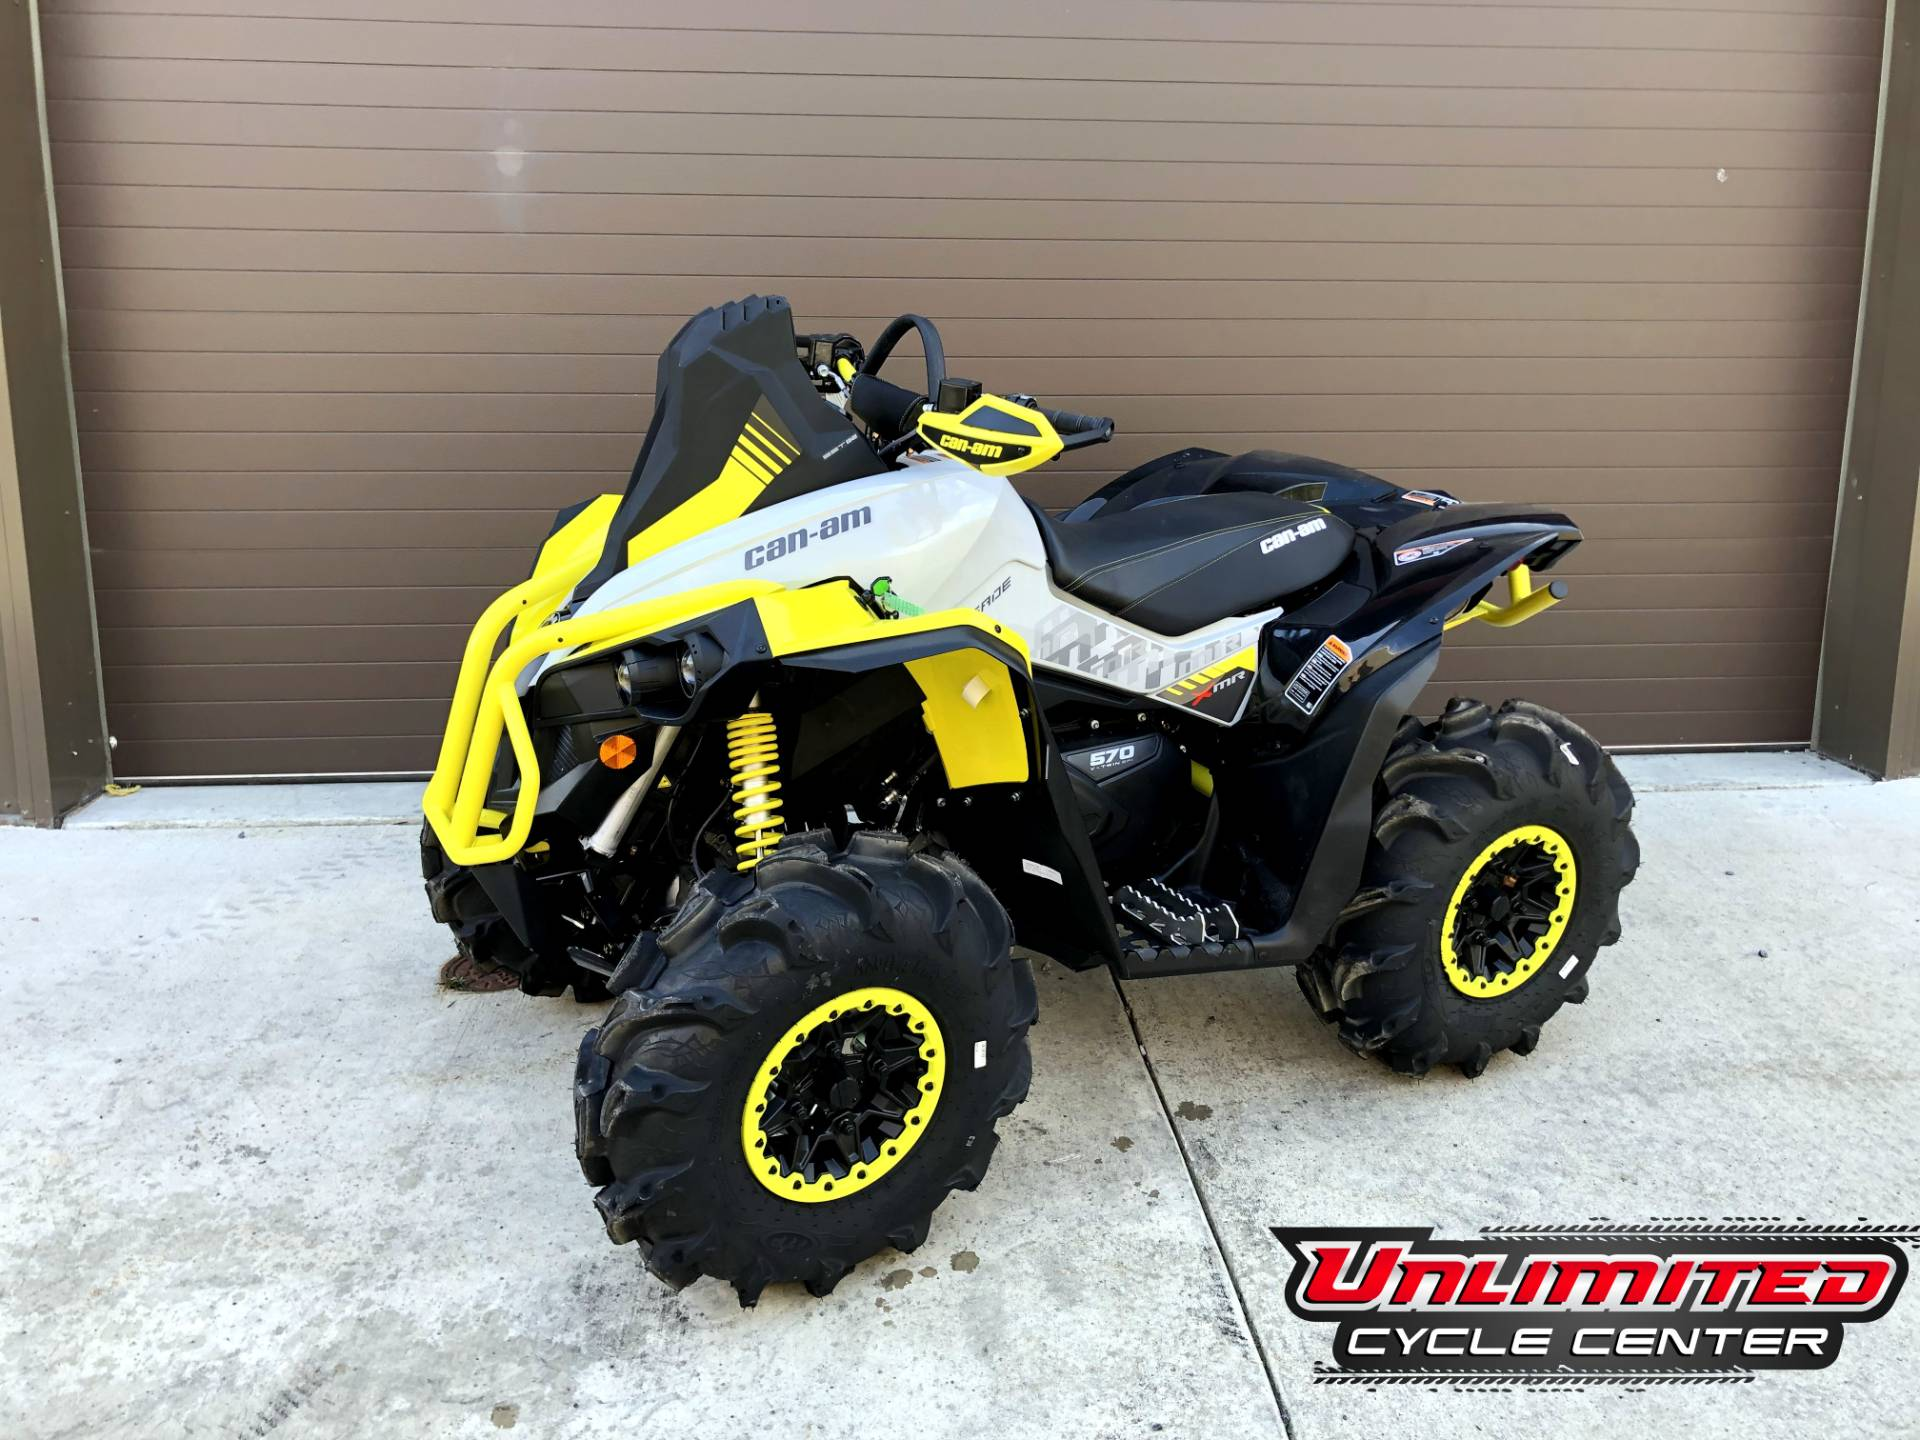 2019 Can-Am Renegade X MR 570 in Tyrone, Pennsylvania - Photo 1